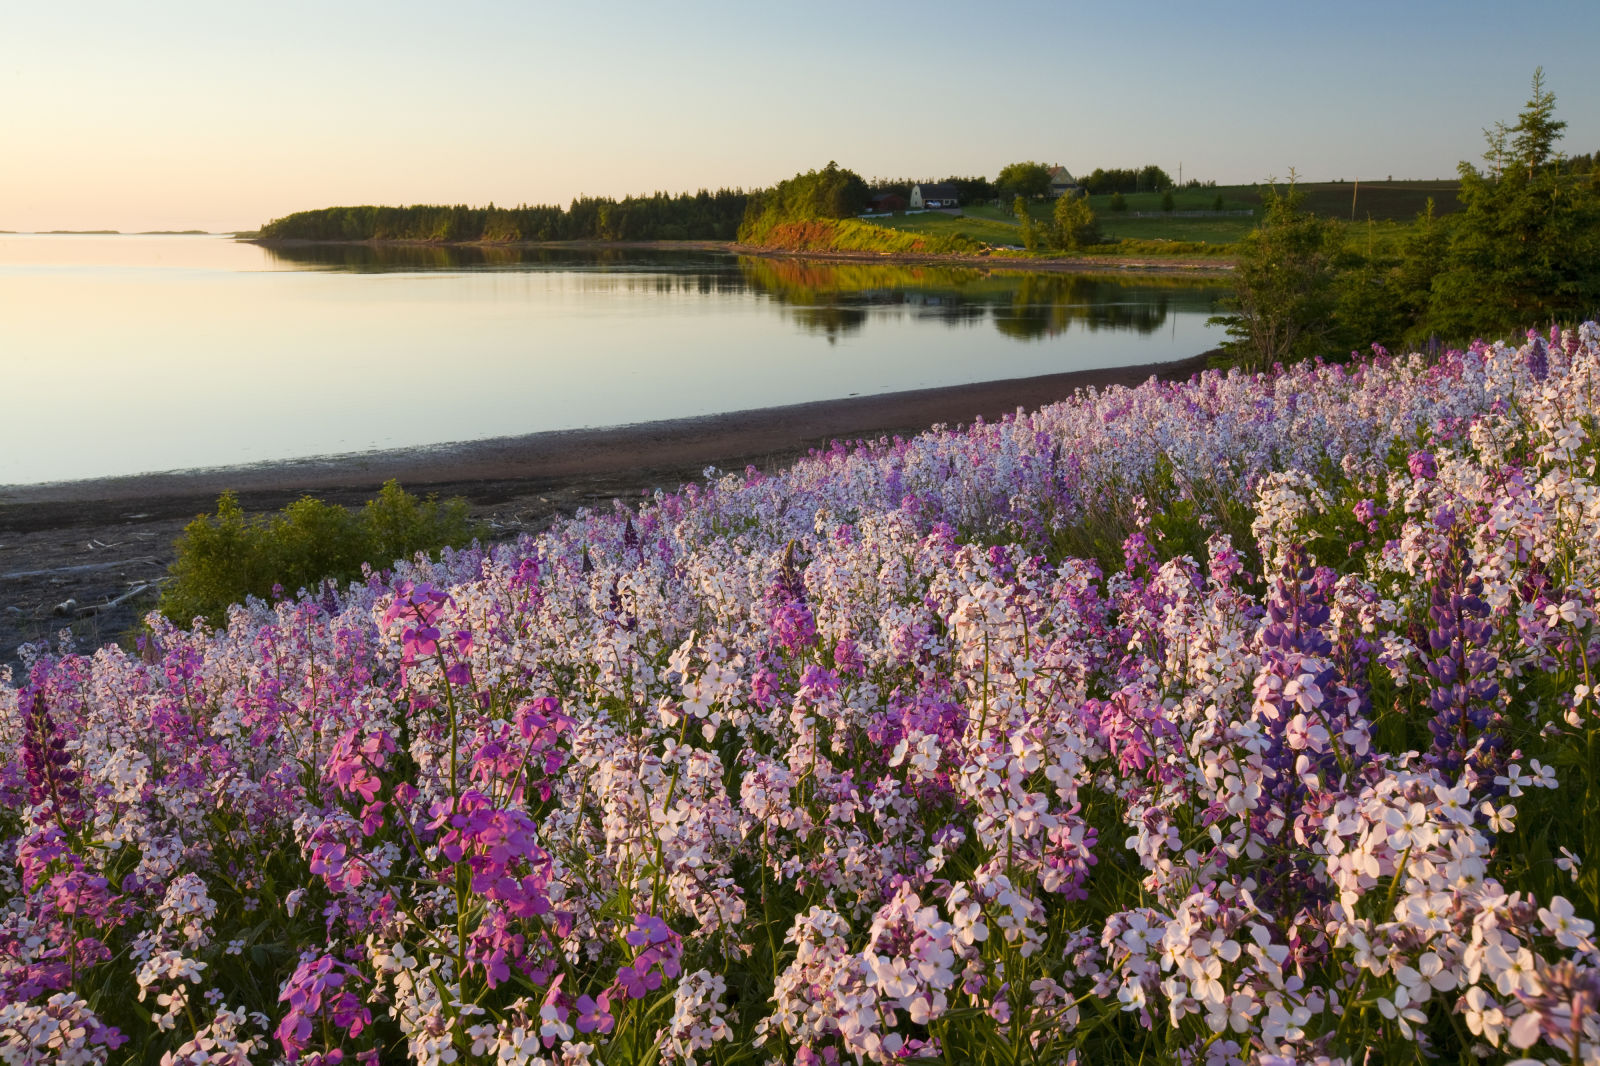 Phlox flowers growing on the banks of Prince Edward Island in Canada.  / Getty